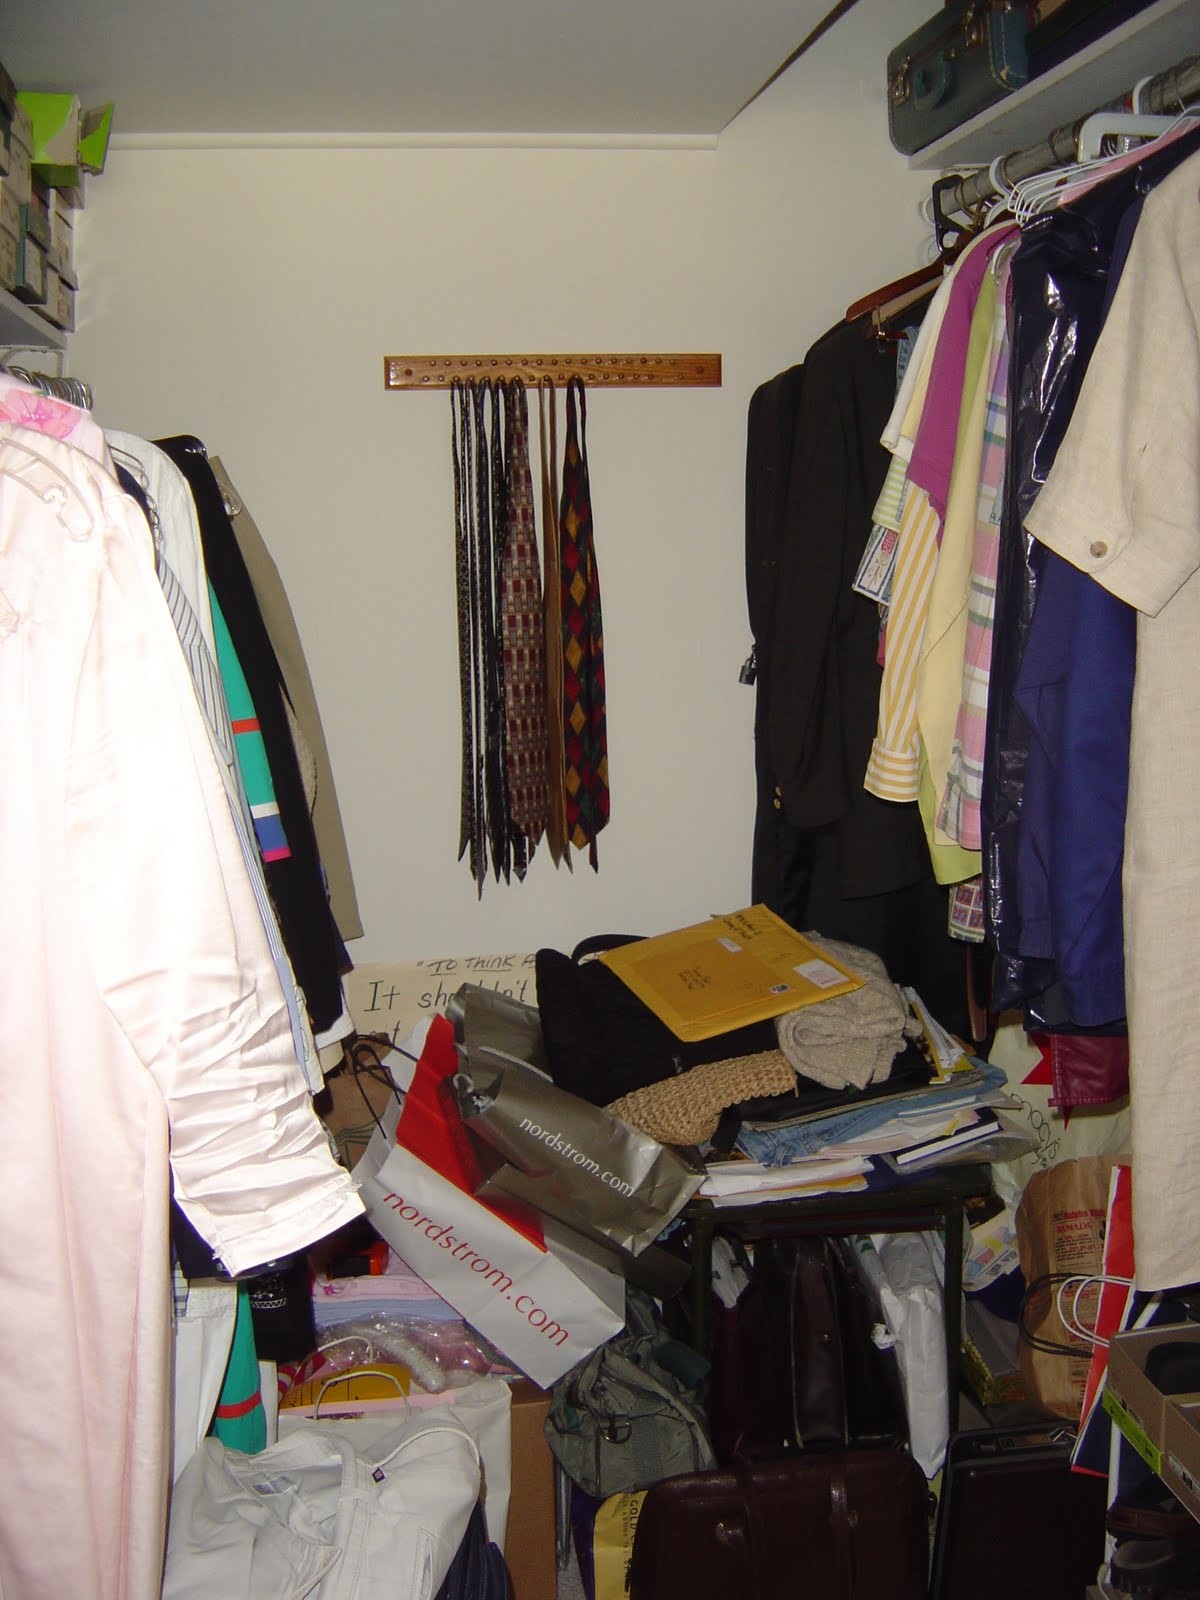 Bedroom Closet Clean Up Part 1 Organizing Made Fun Bedroom Closet Clean Up Part 1